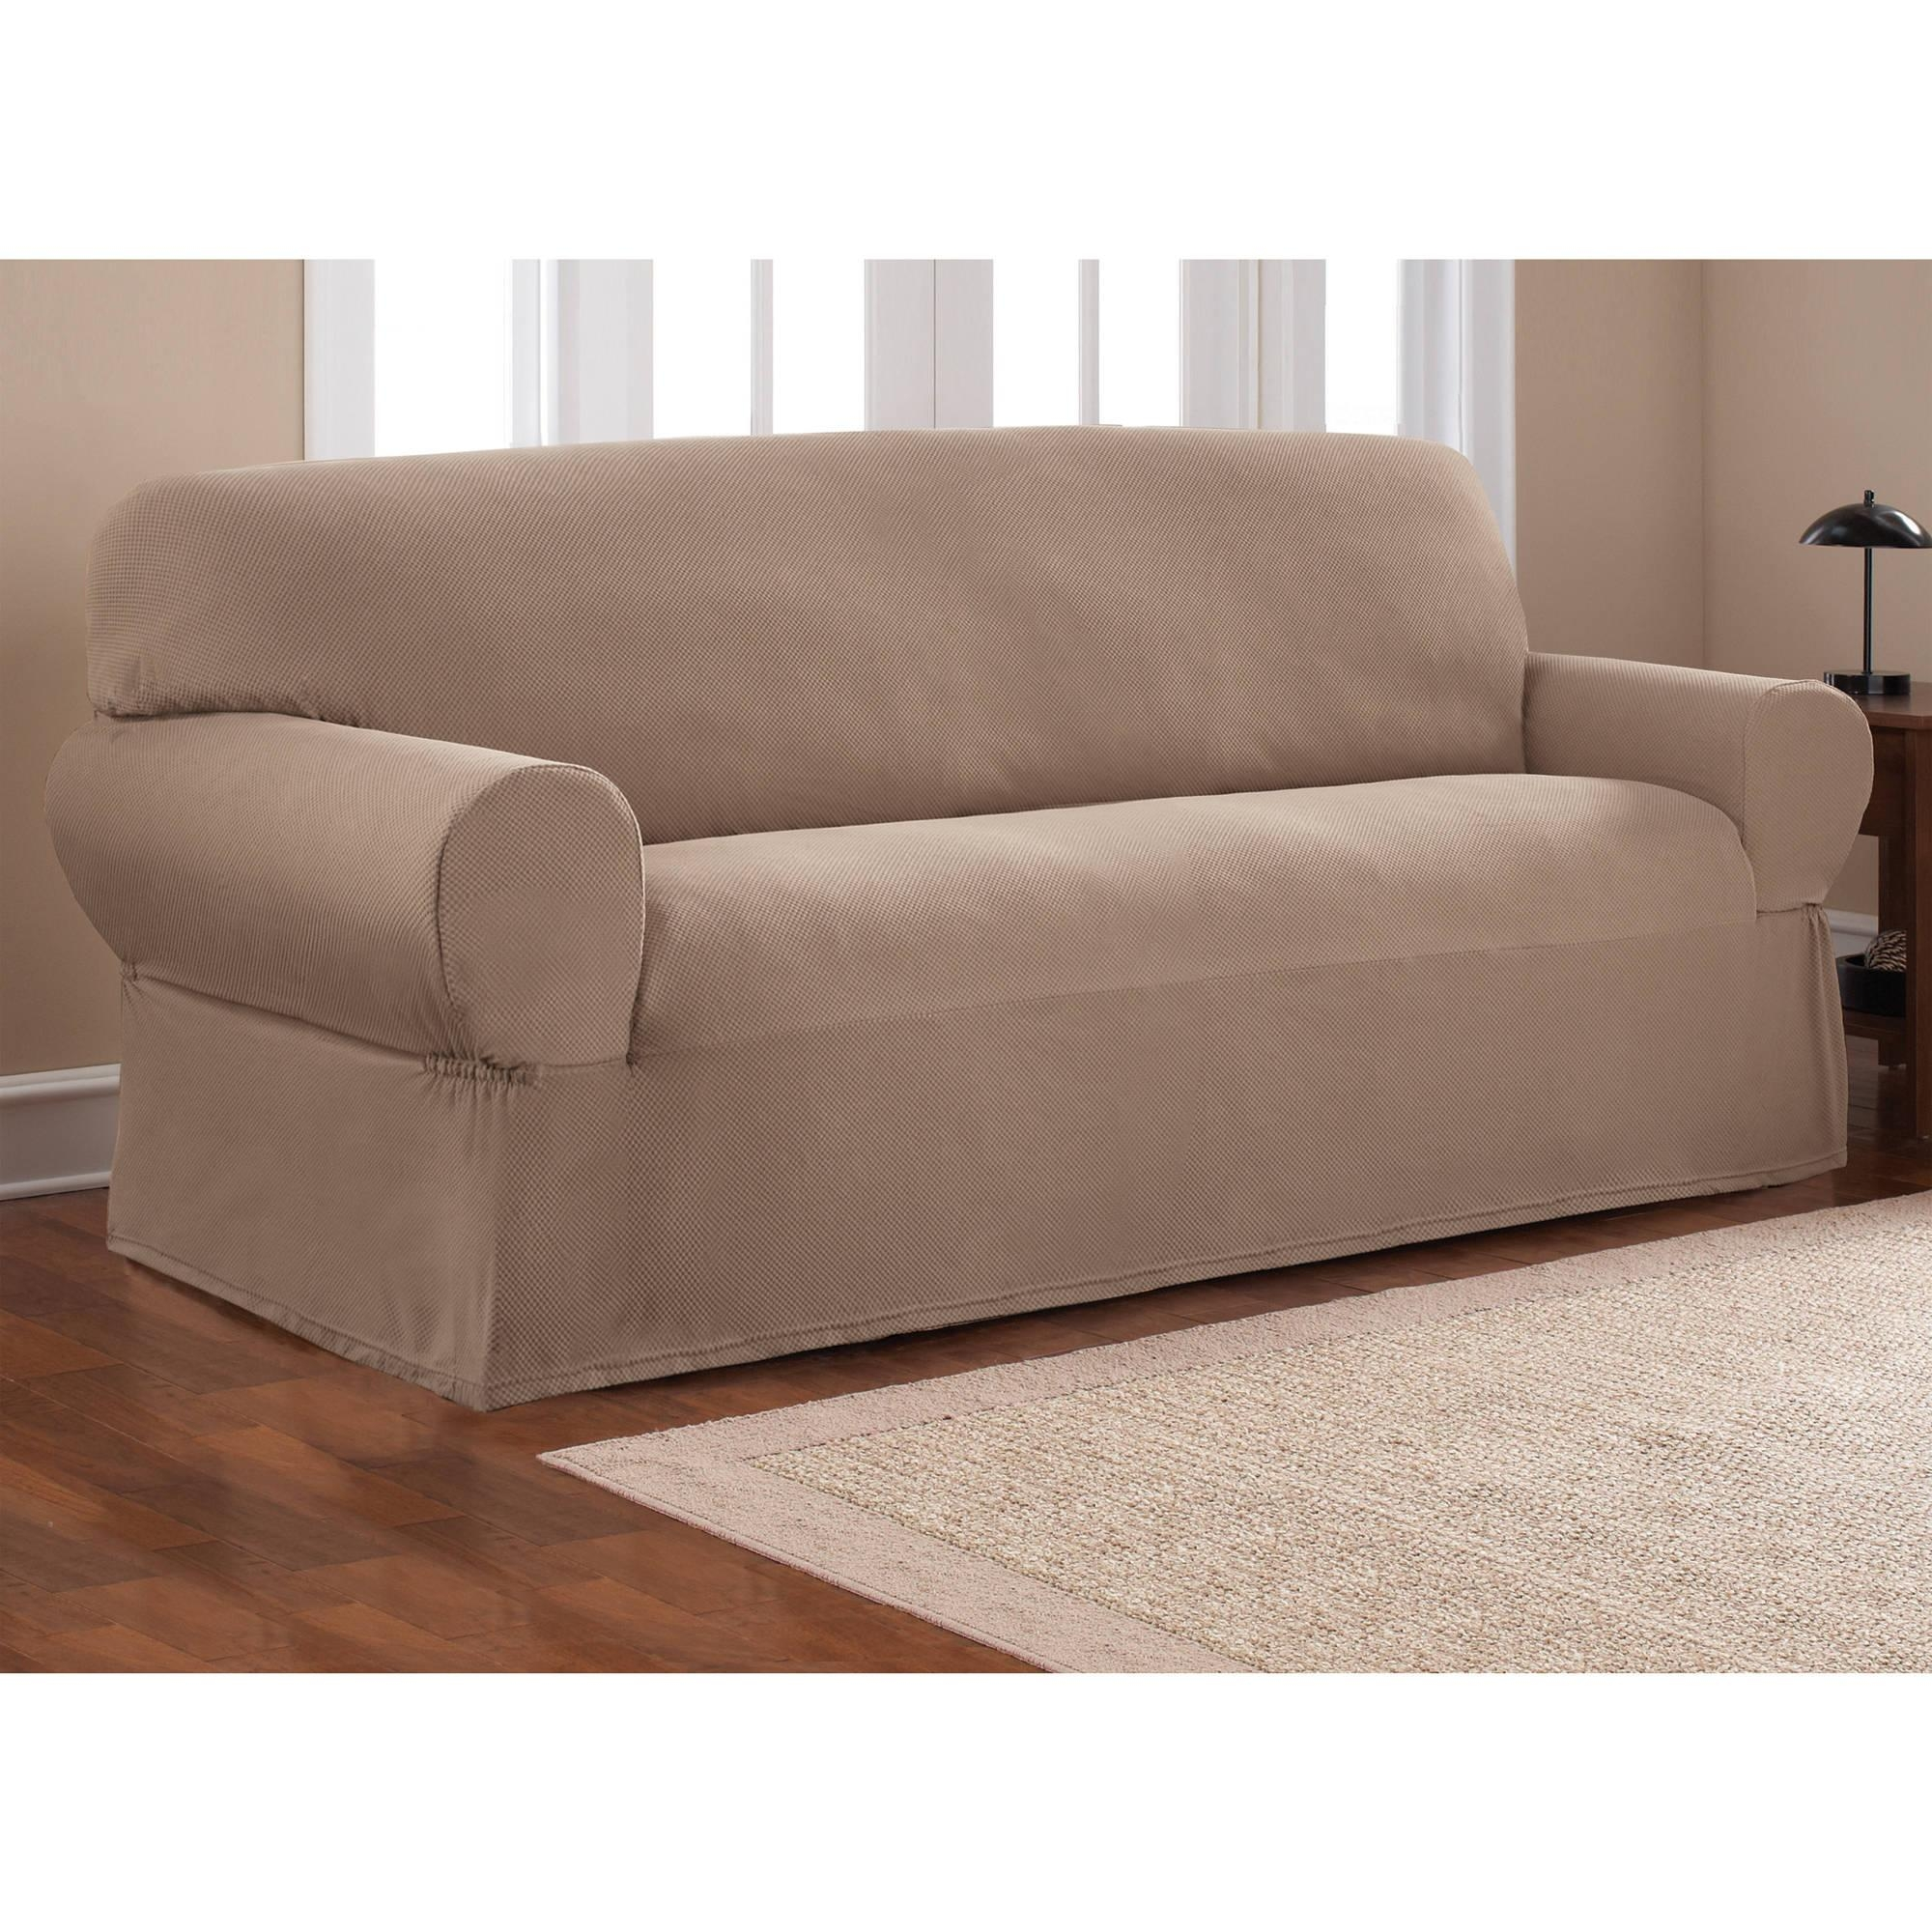 Sofas : Amazing T Cushion Loveseat Slipcover 3 Piece T Cushion Within 2 Piece Sofa Covers (Image 19 of 27)